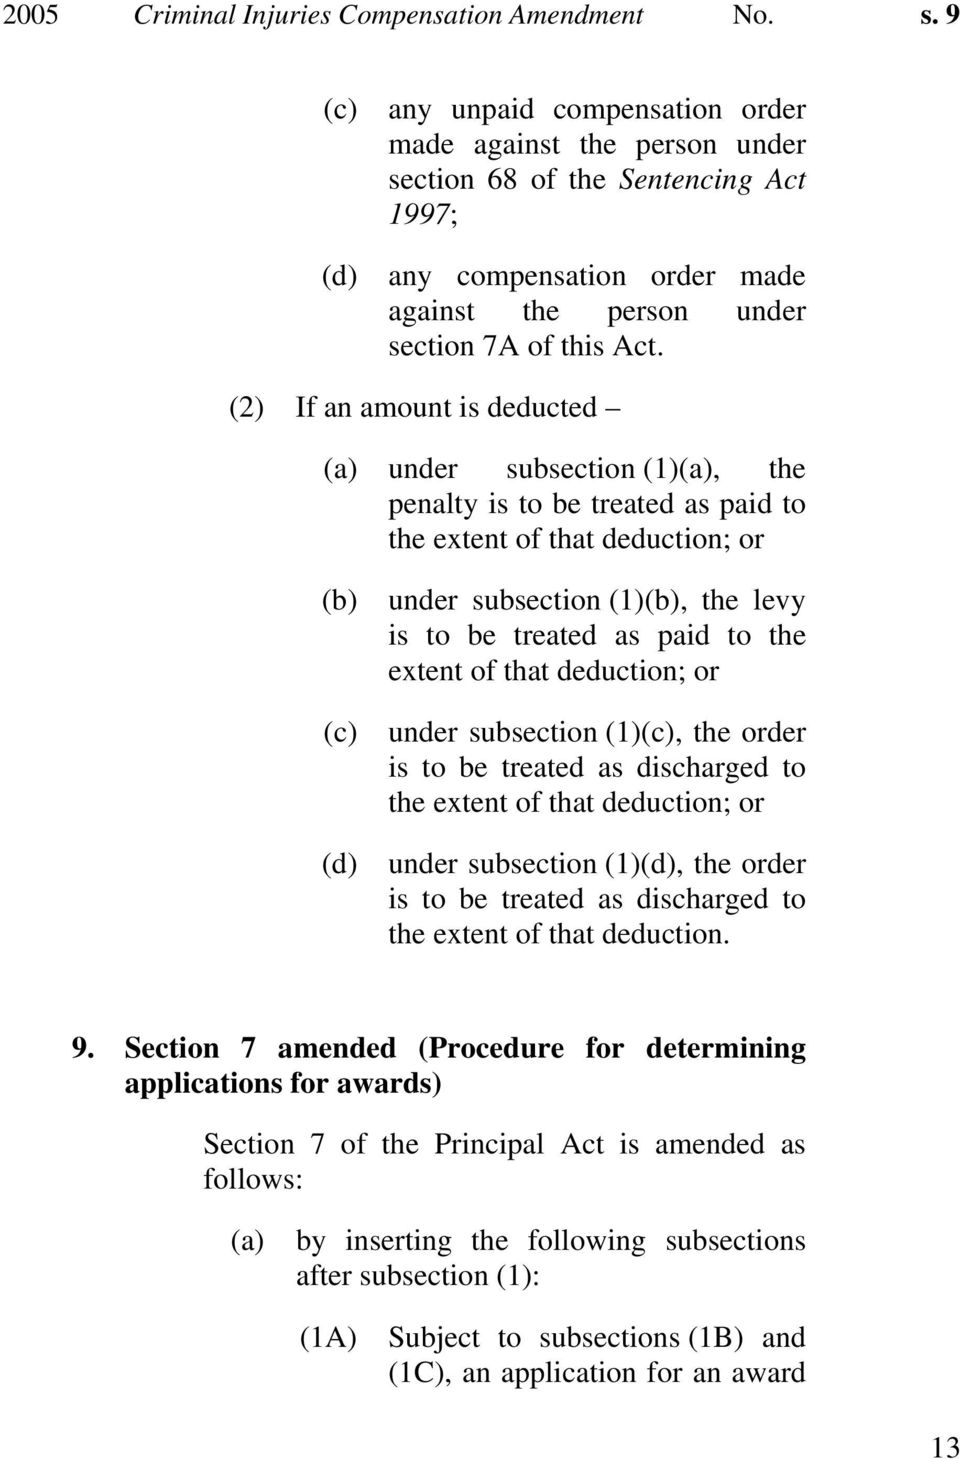 (2) If an amount is deducted (a) under subsection (1)(a), the penalty is to be treated as paid to the extent of that deduction; or (b) under subsection (1)(b), the levy is to be treated as paid to